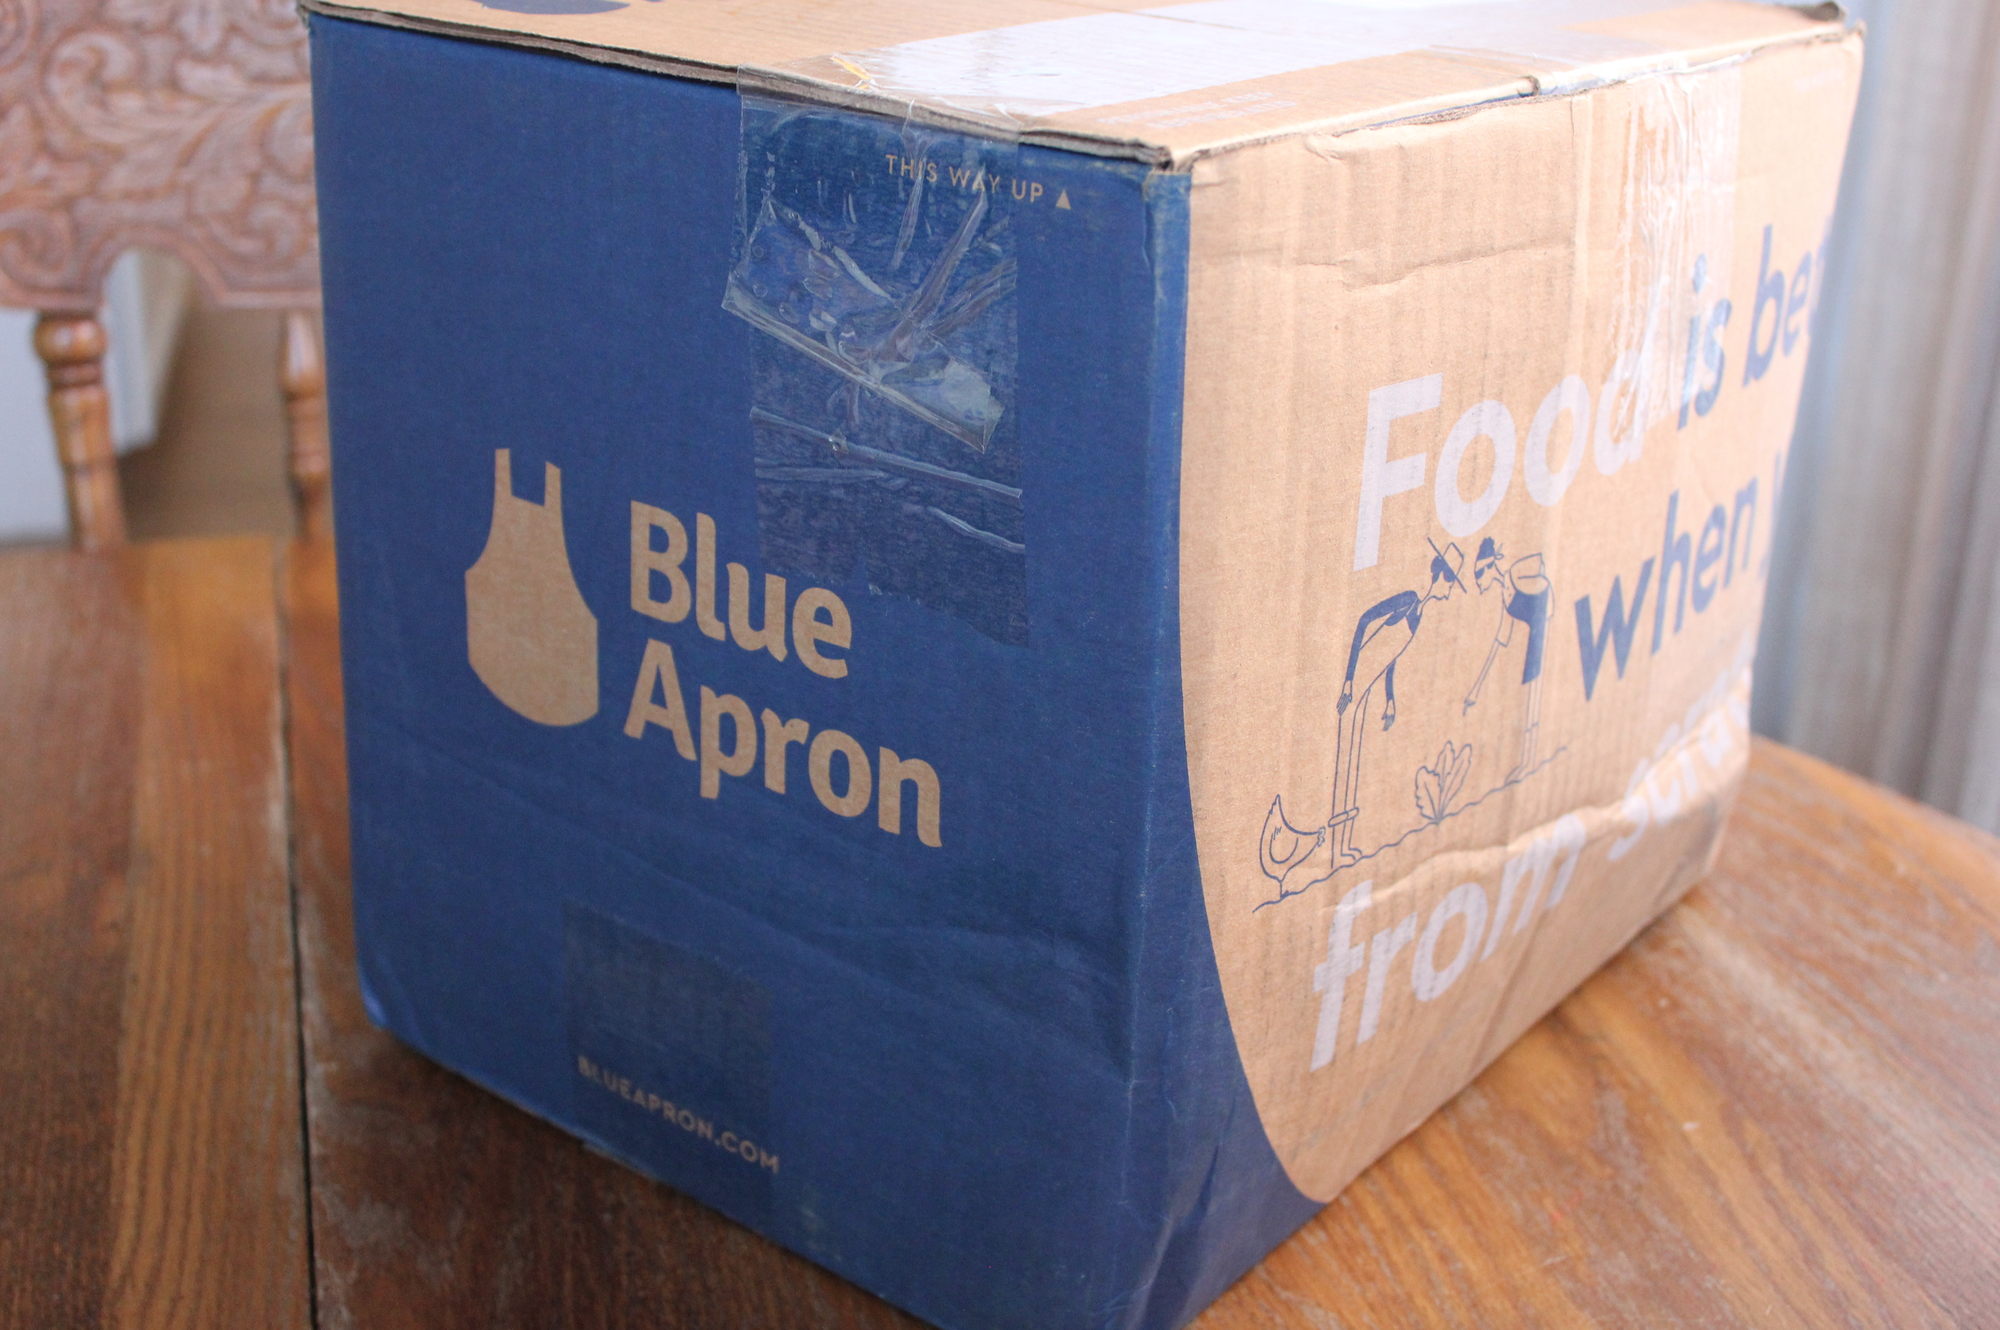 Blue apron deliver to canada